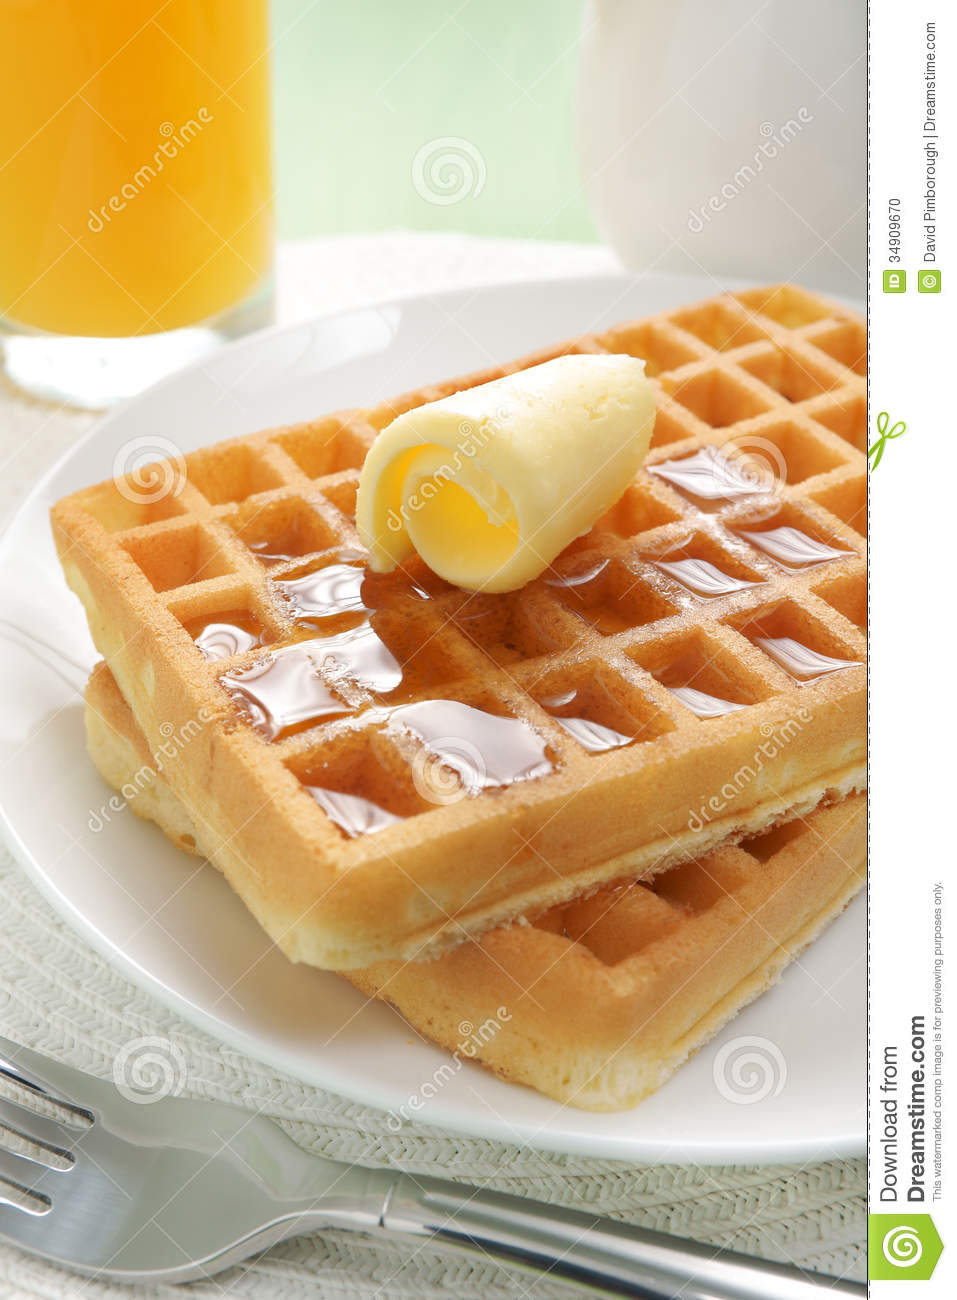 Waffles and maple syrup stock photo. Image of pitcher ...